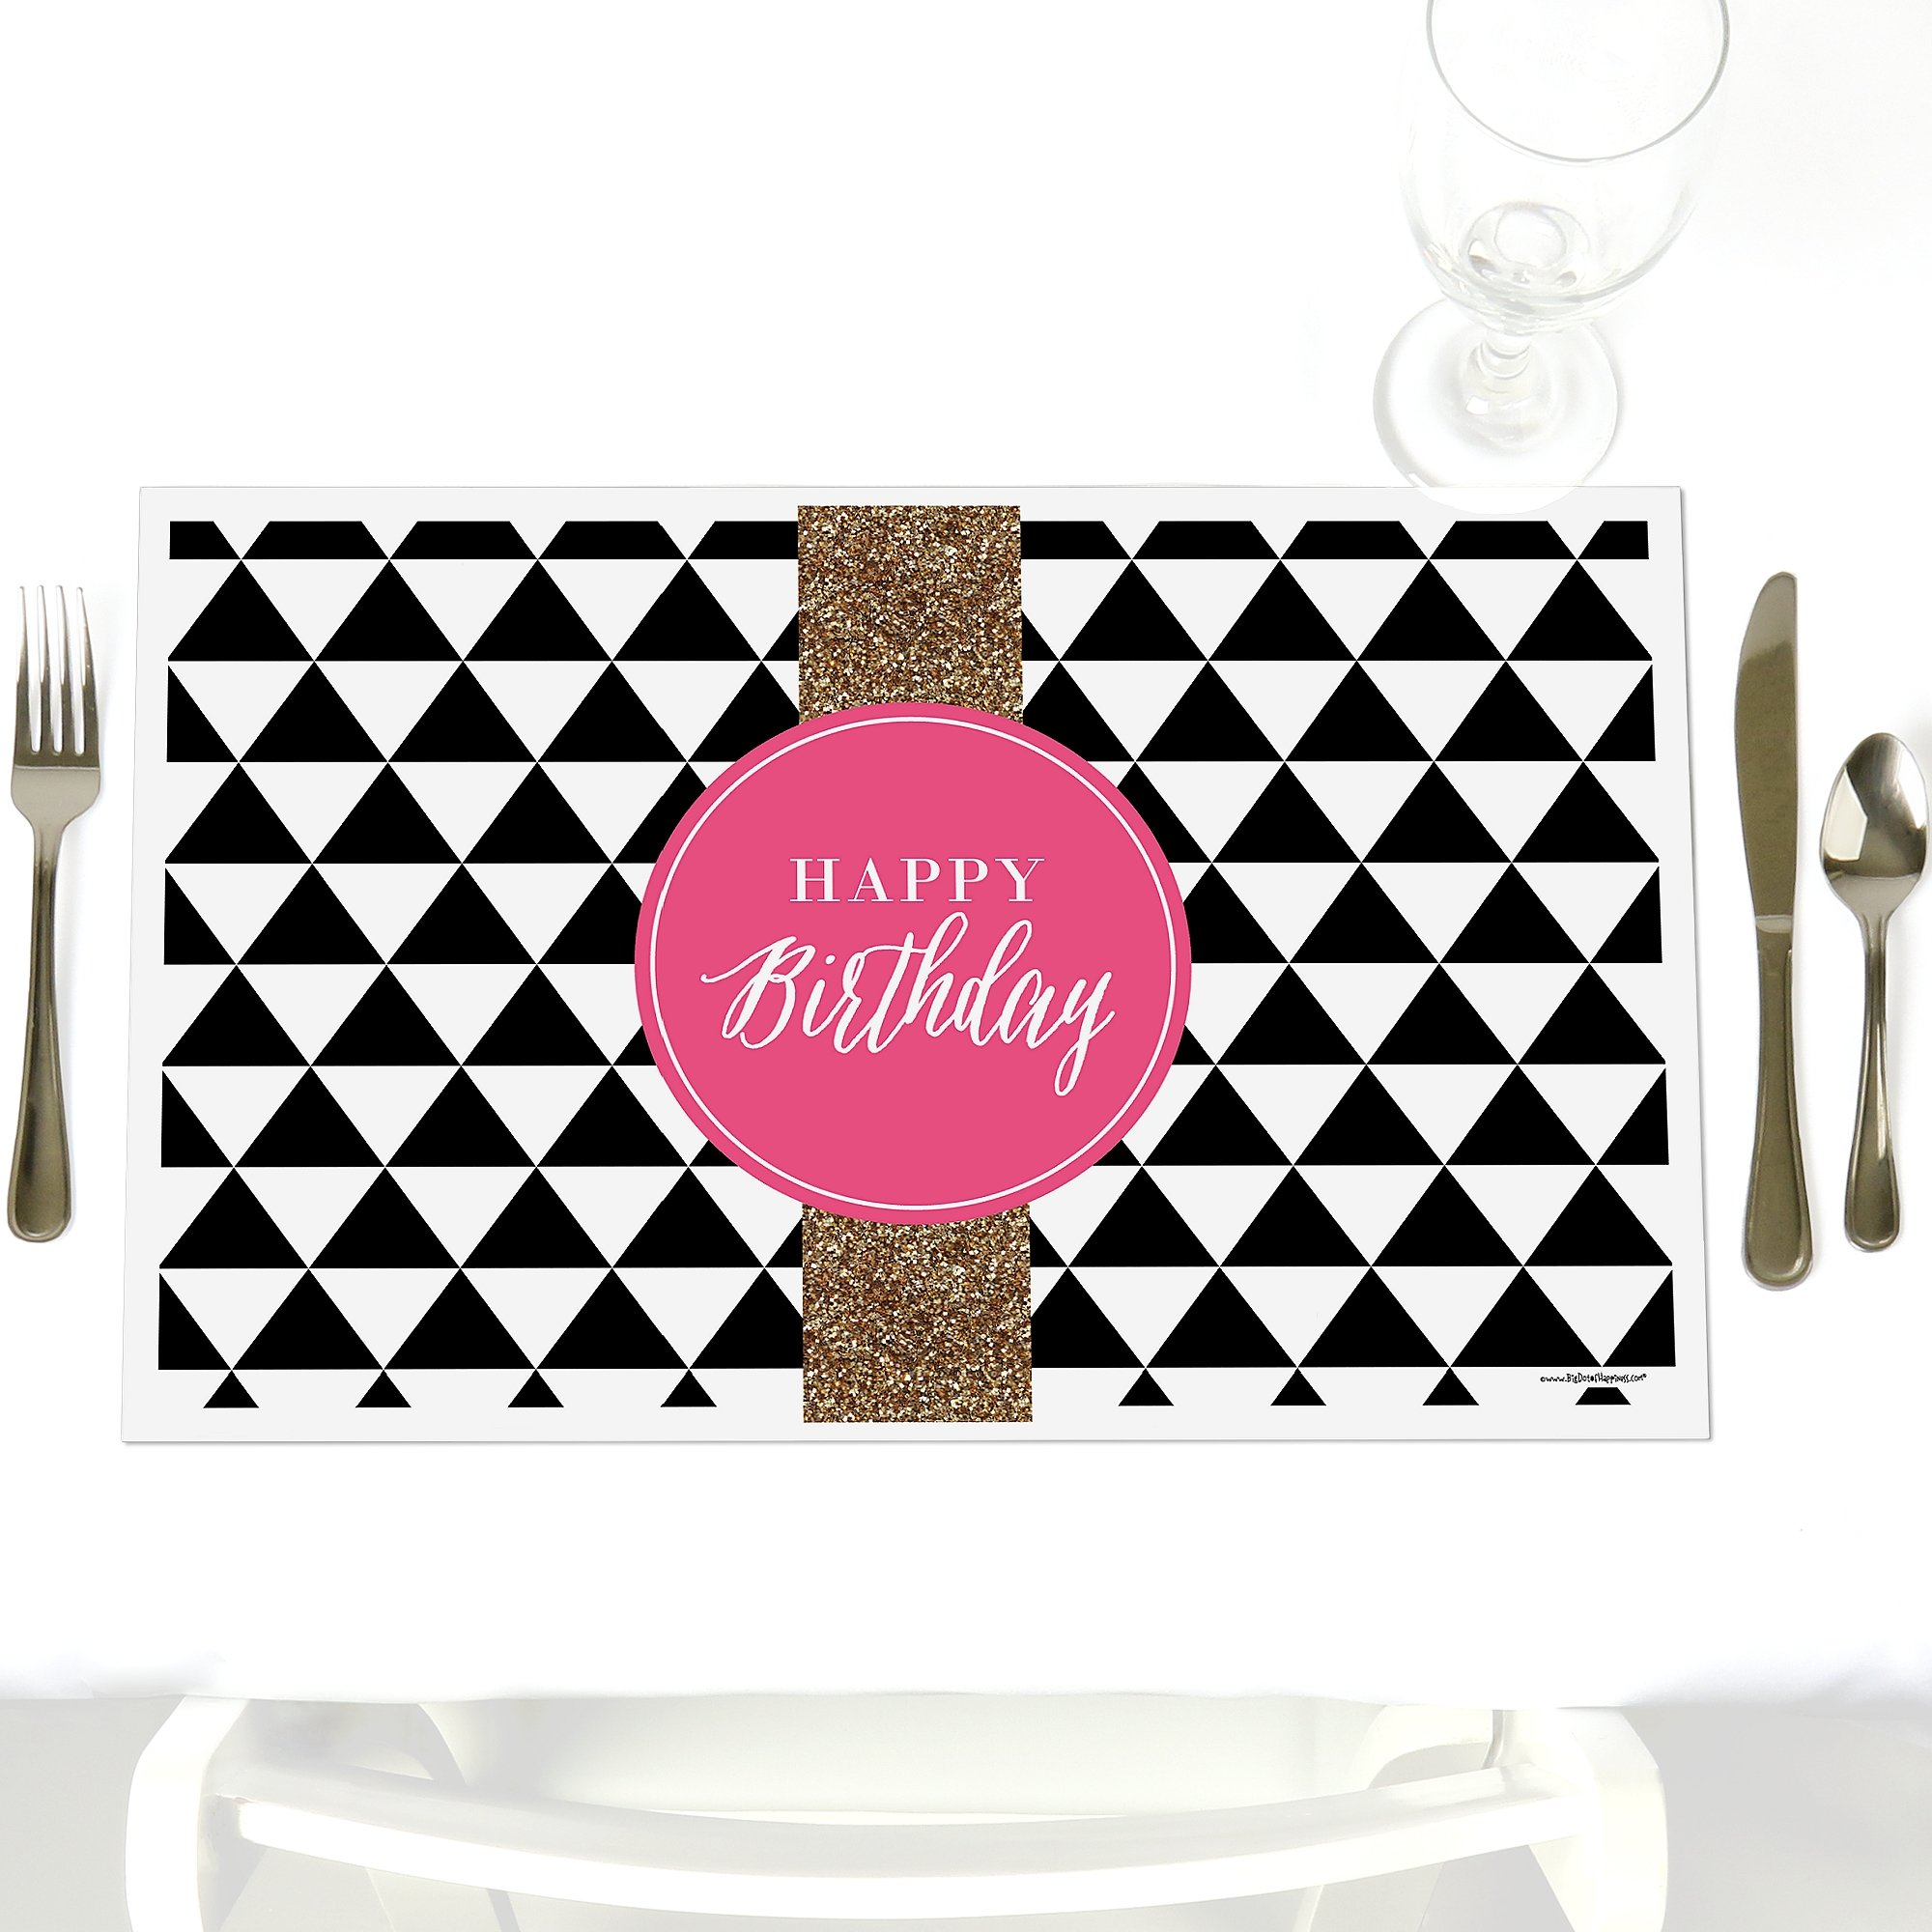 Chic Happy Birthday - Pink, Black and Gold - Party Table Decorations - Birthday Party Placemats - Set of 12